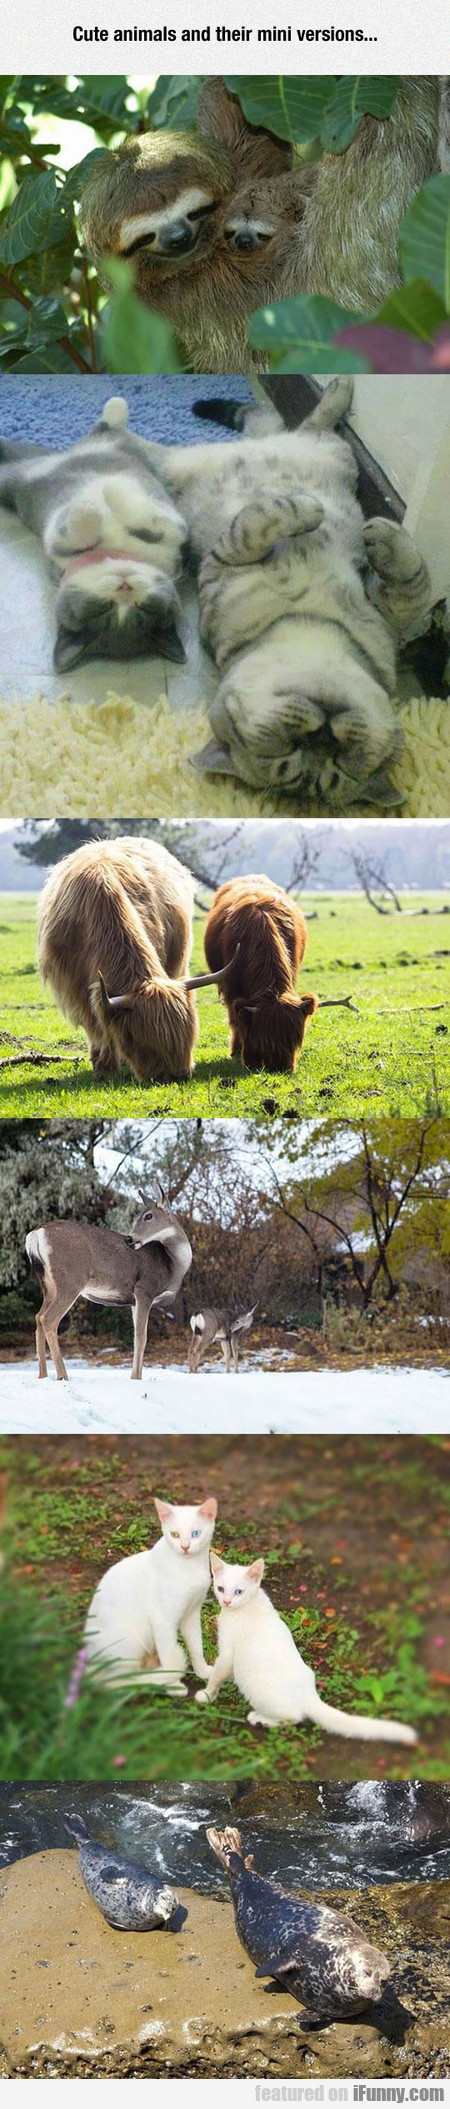 Cute animals and their mini versions...